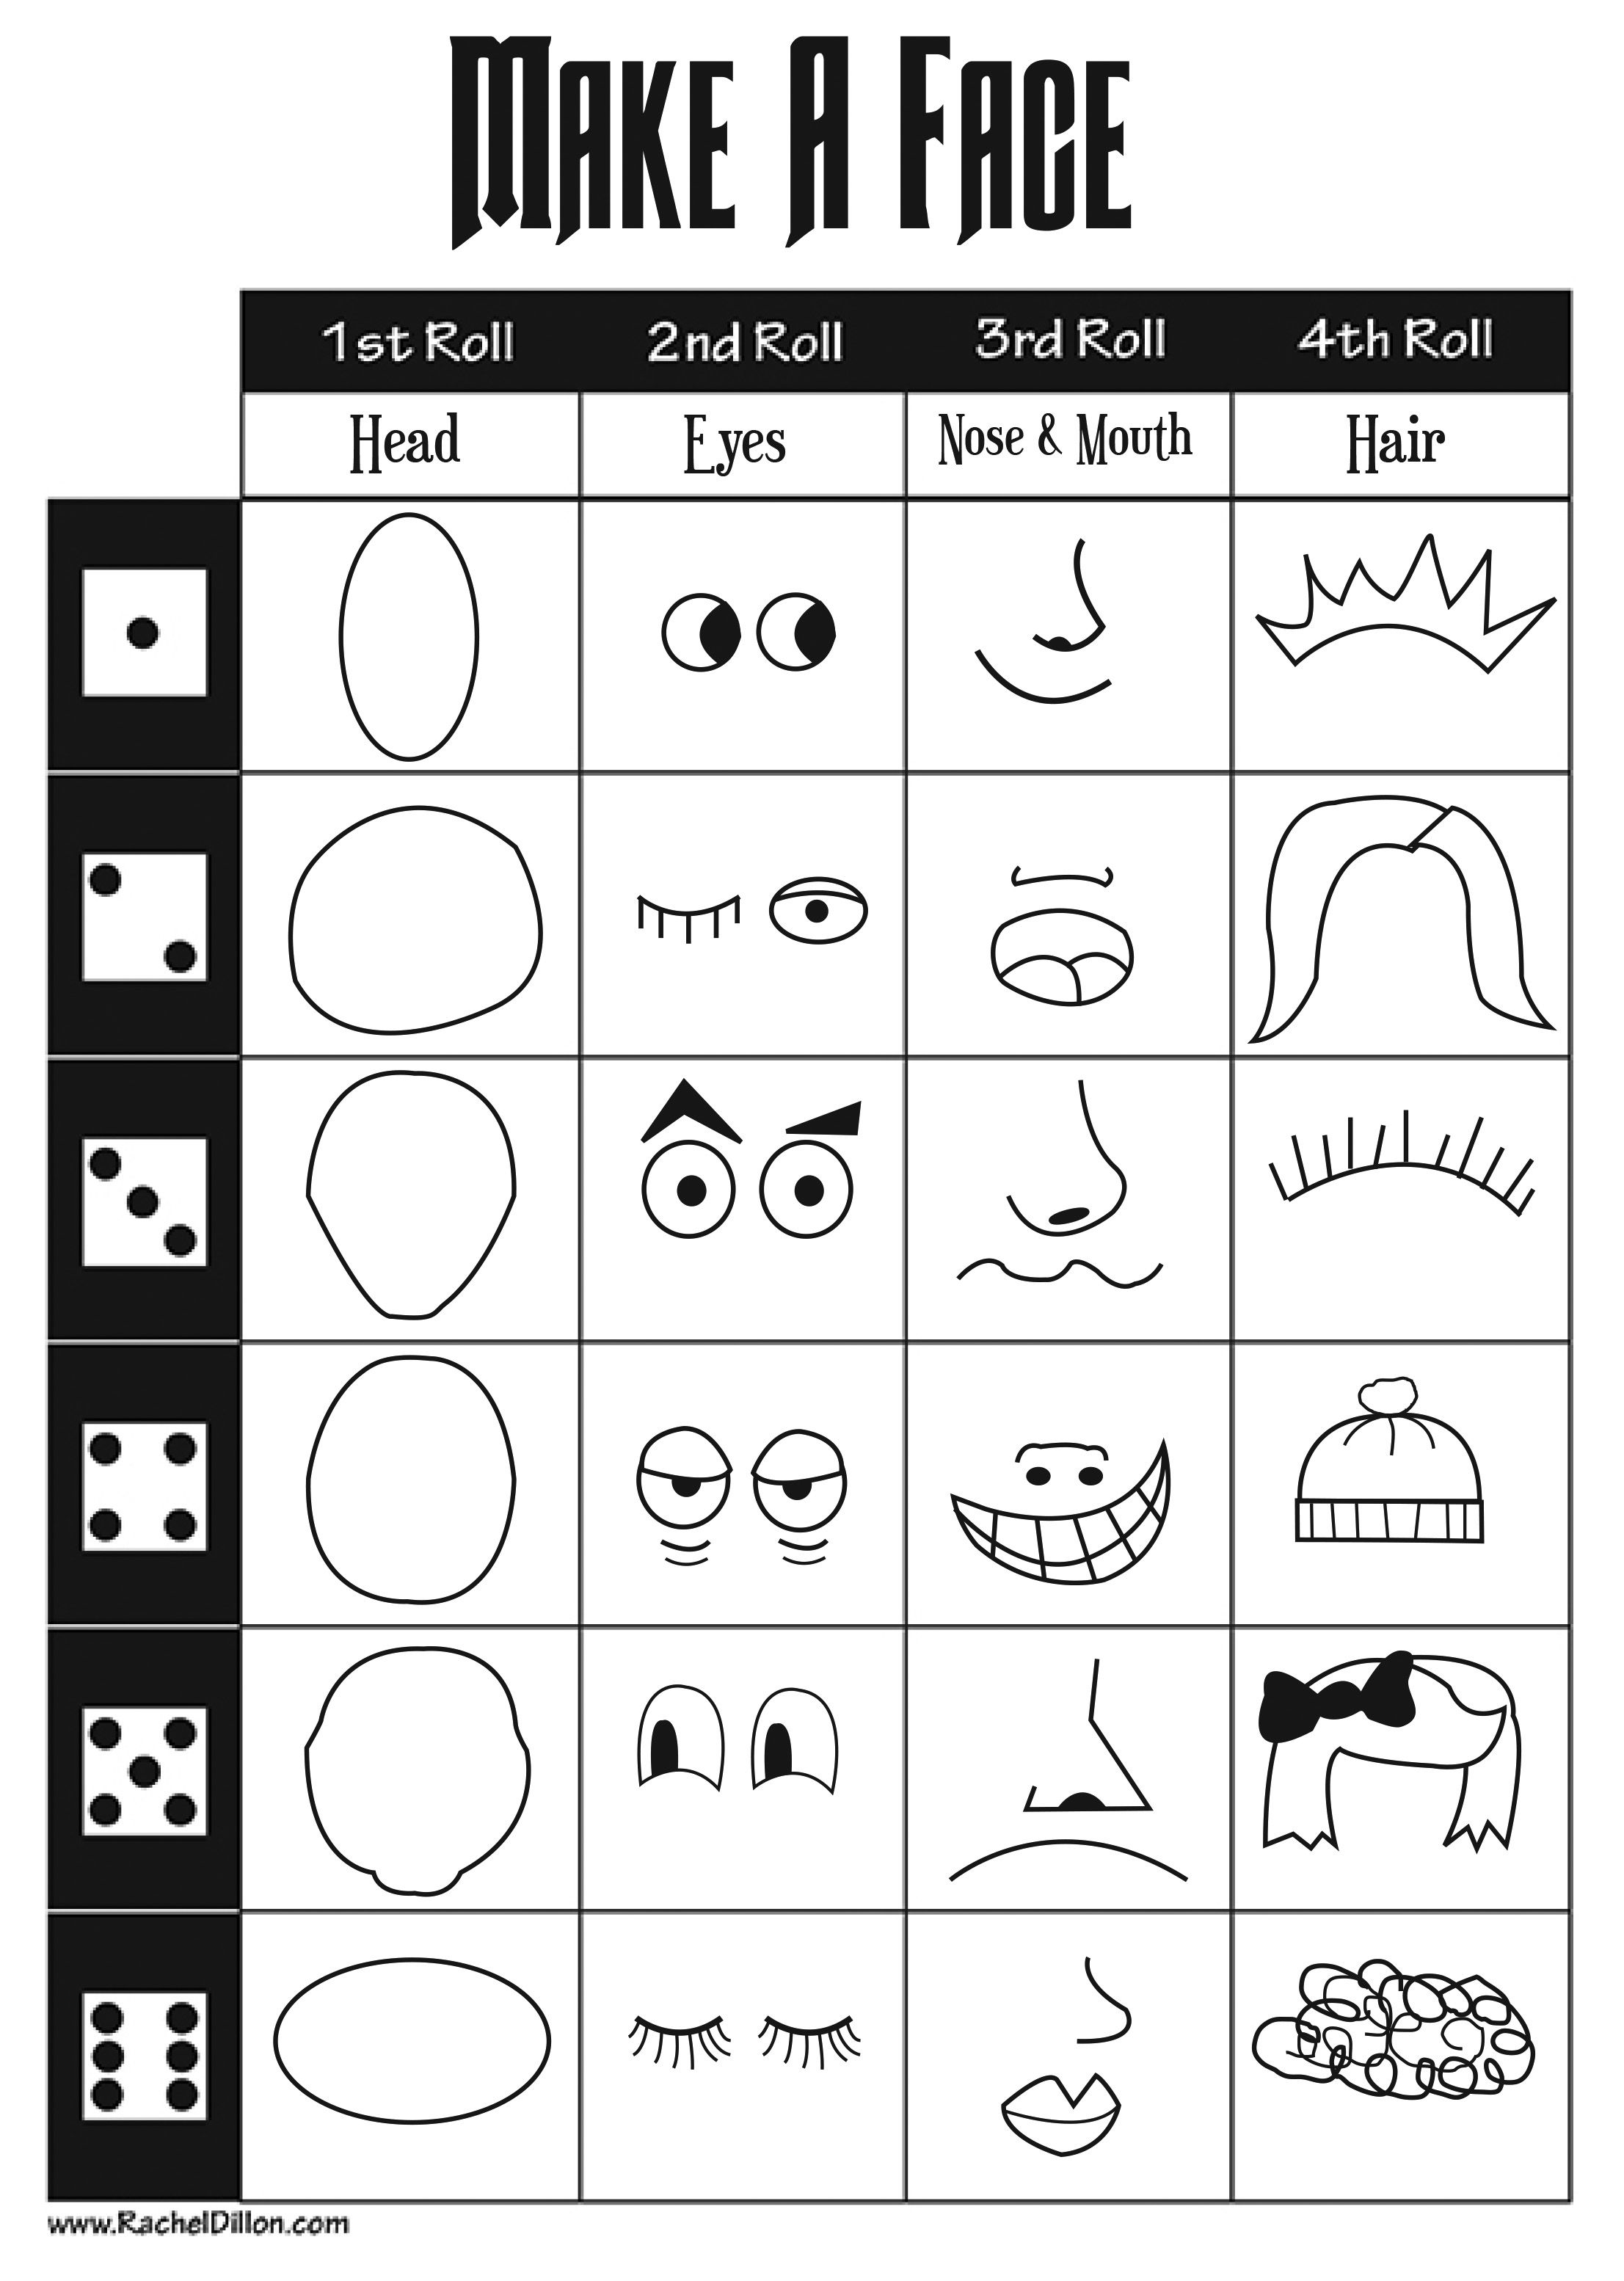 Make a Face Dice Game for kids to do. This is great to keep kids ...